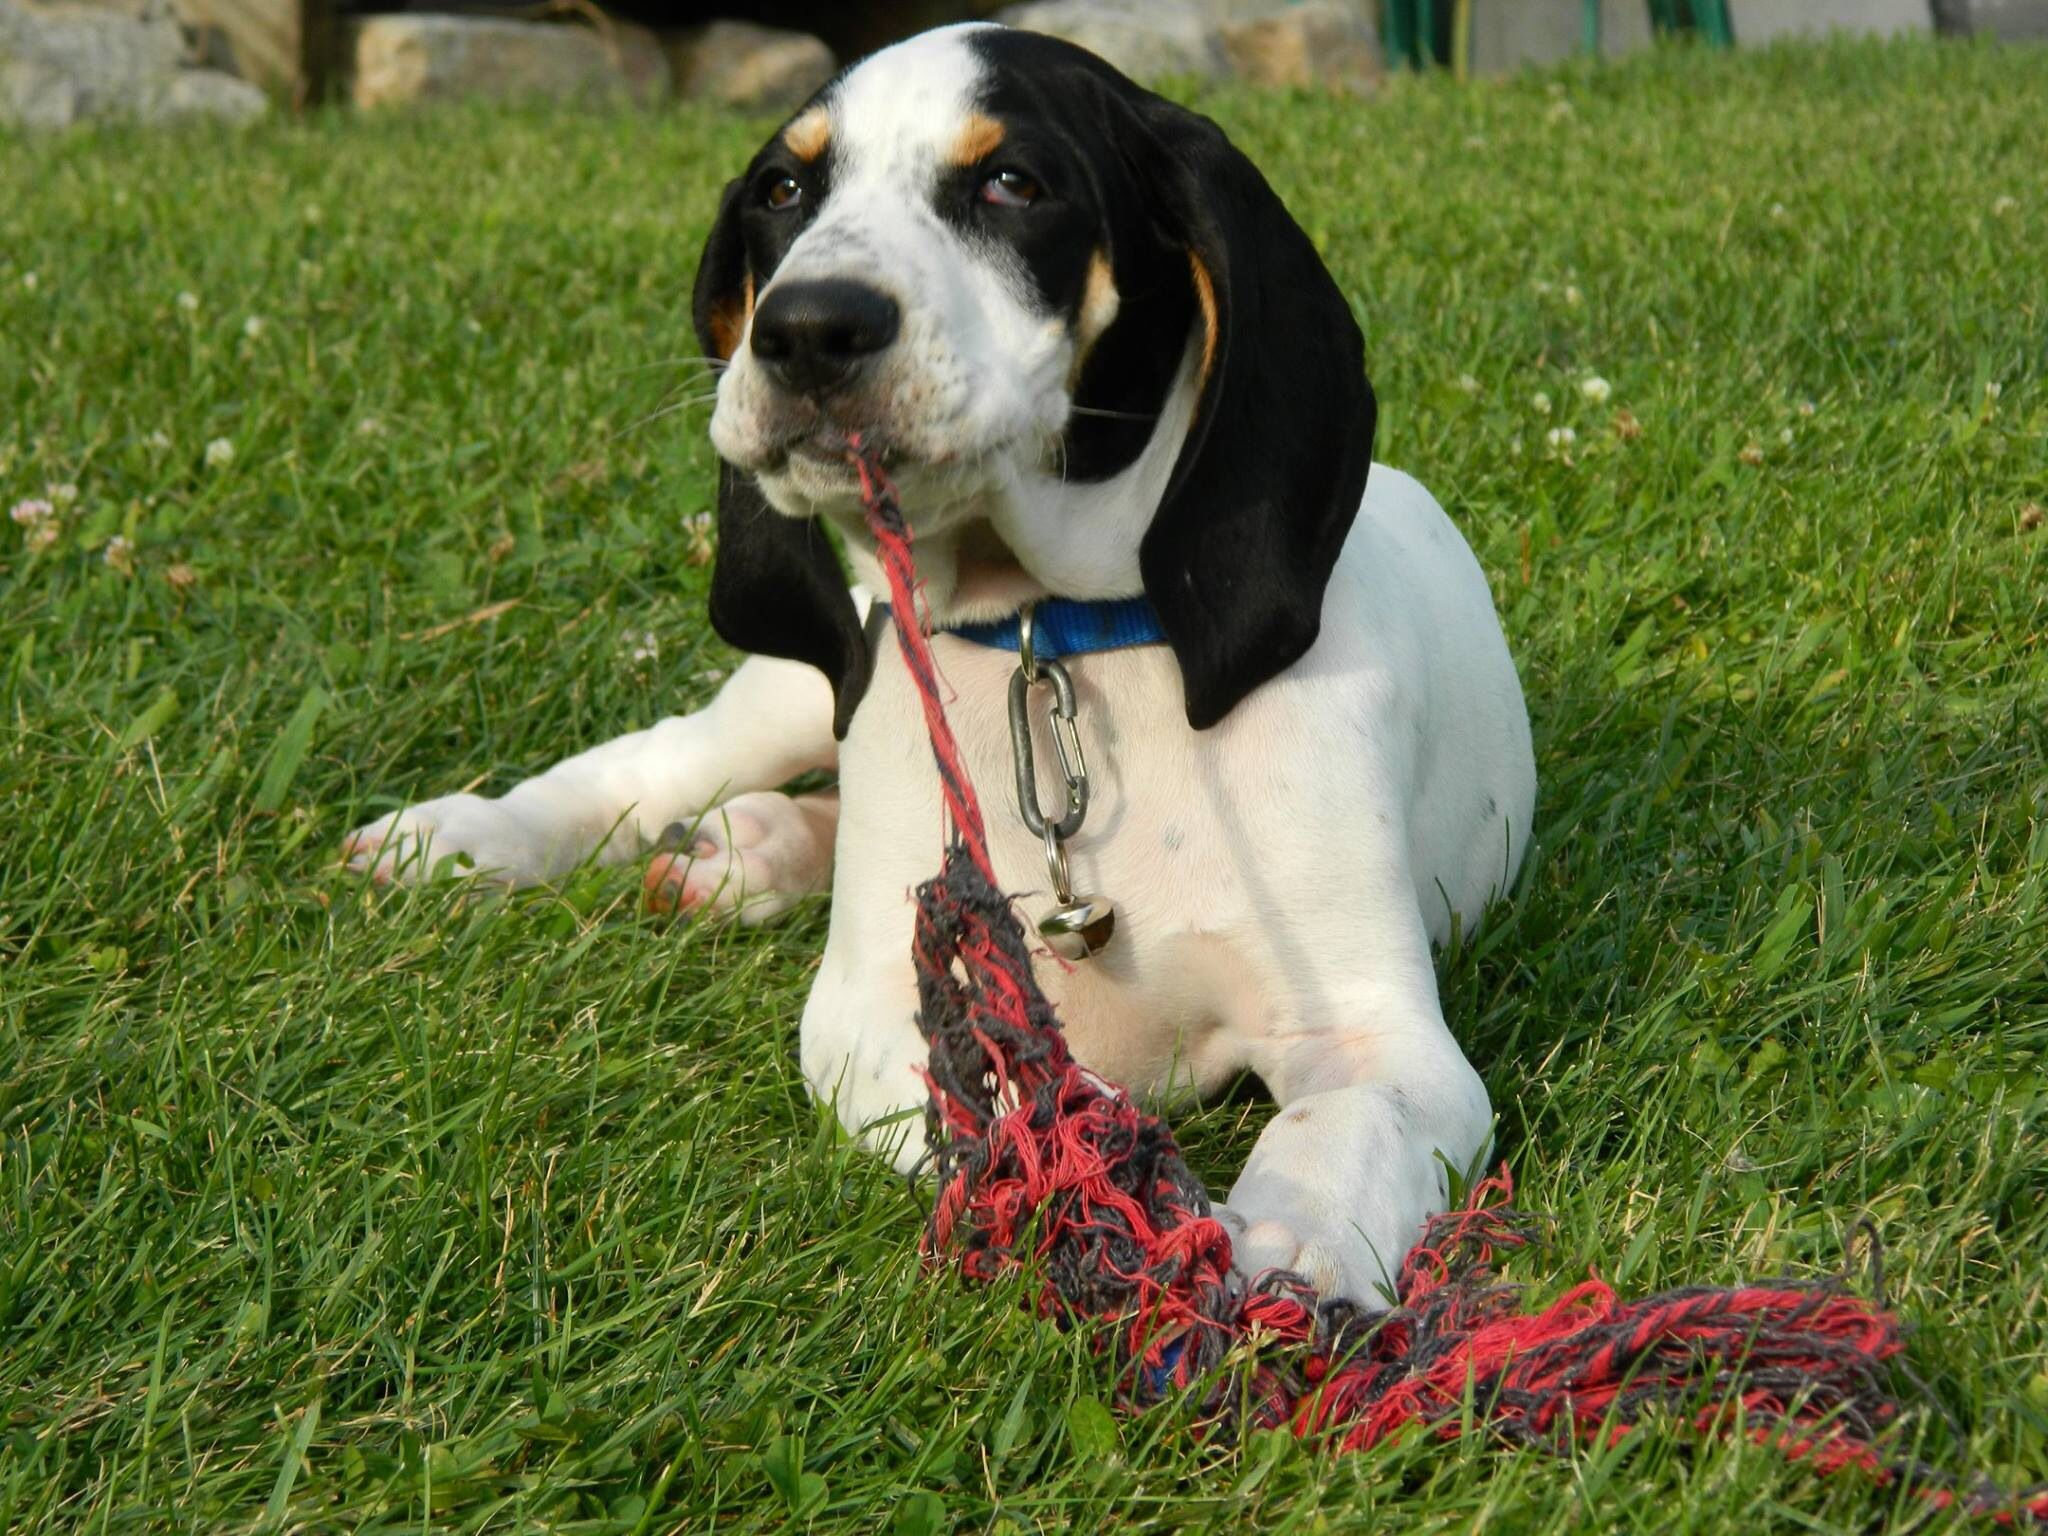 Cooter The Bluetick Coonhound Pup Is White Like His Grandma With